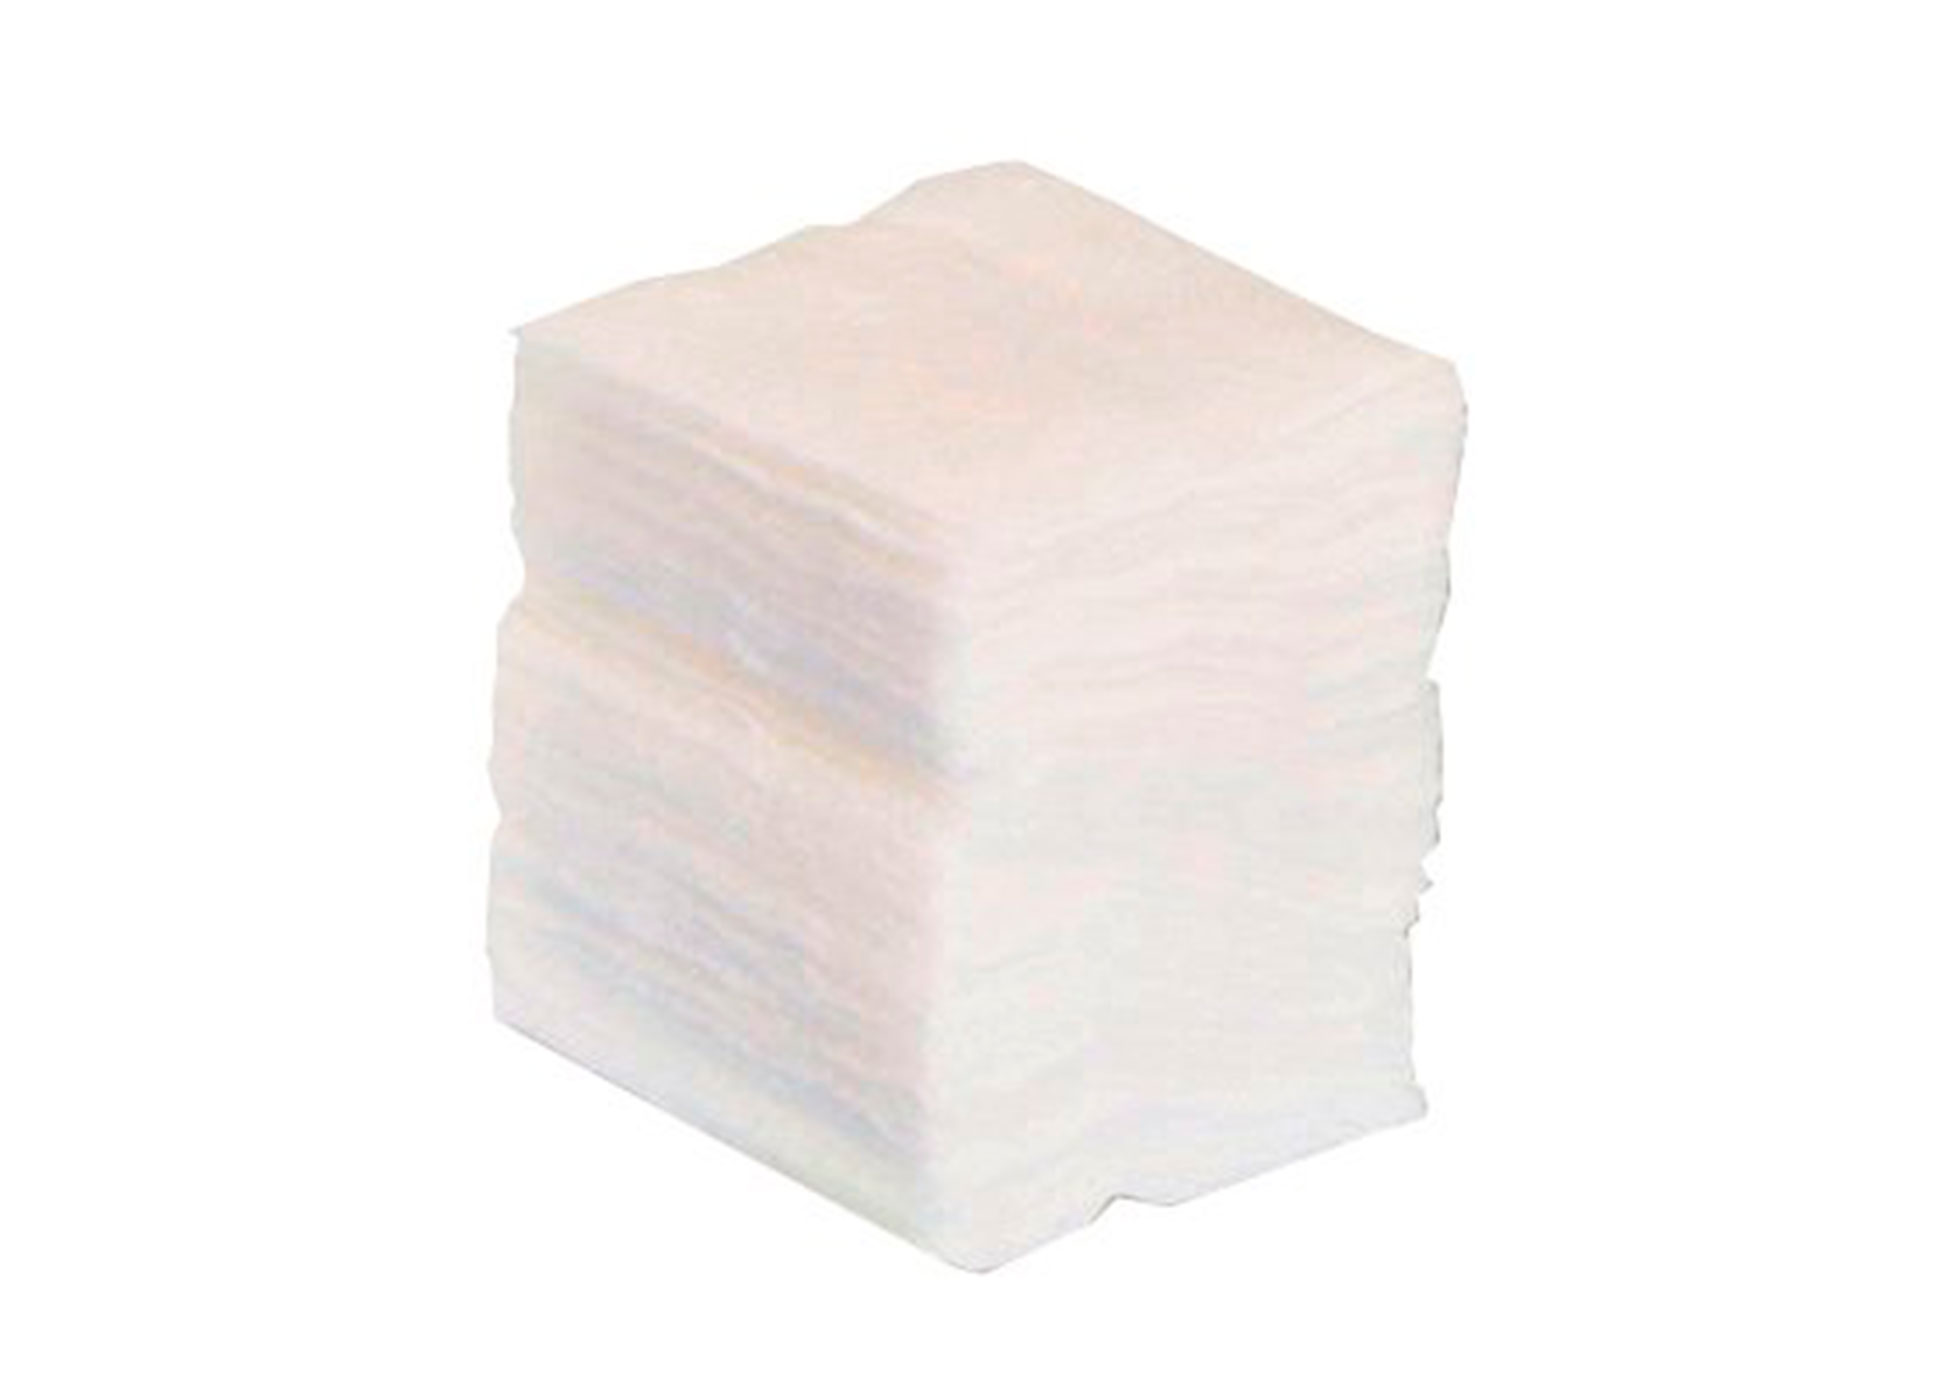 cotton-gauze-swabs.jpg